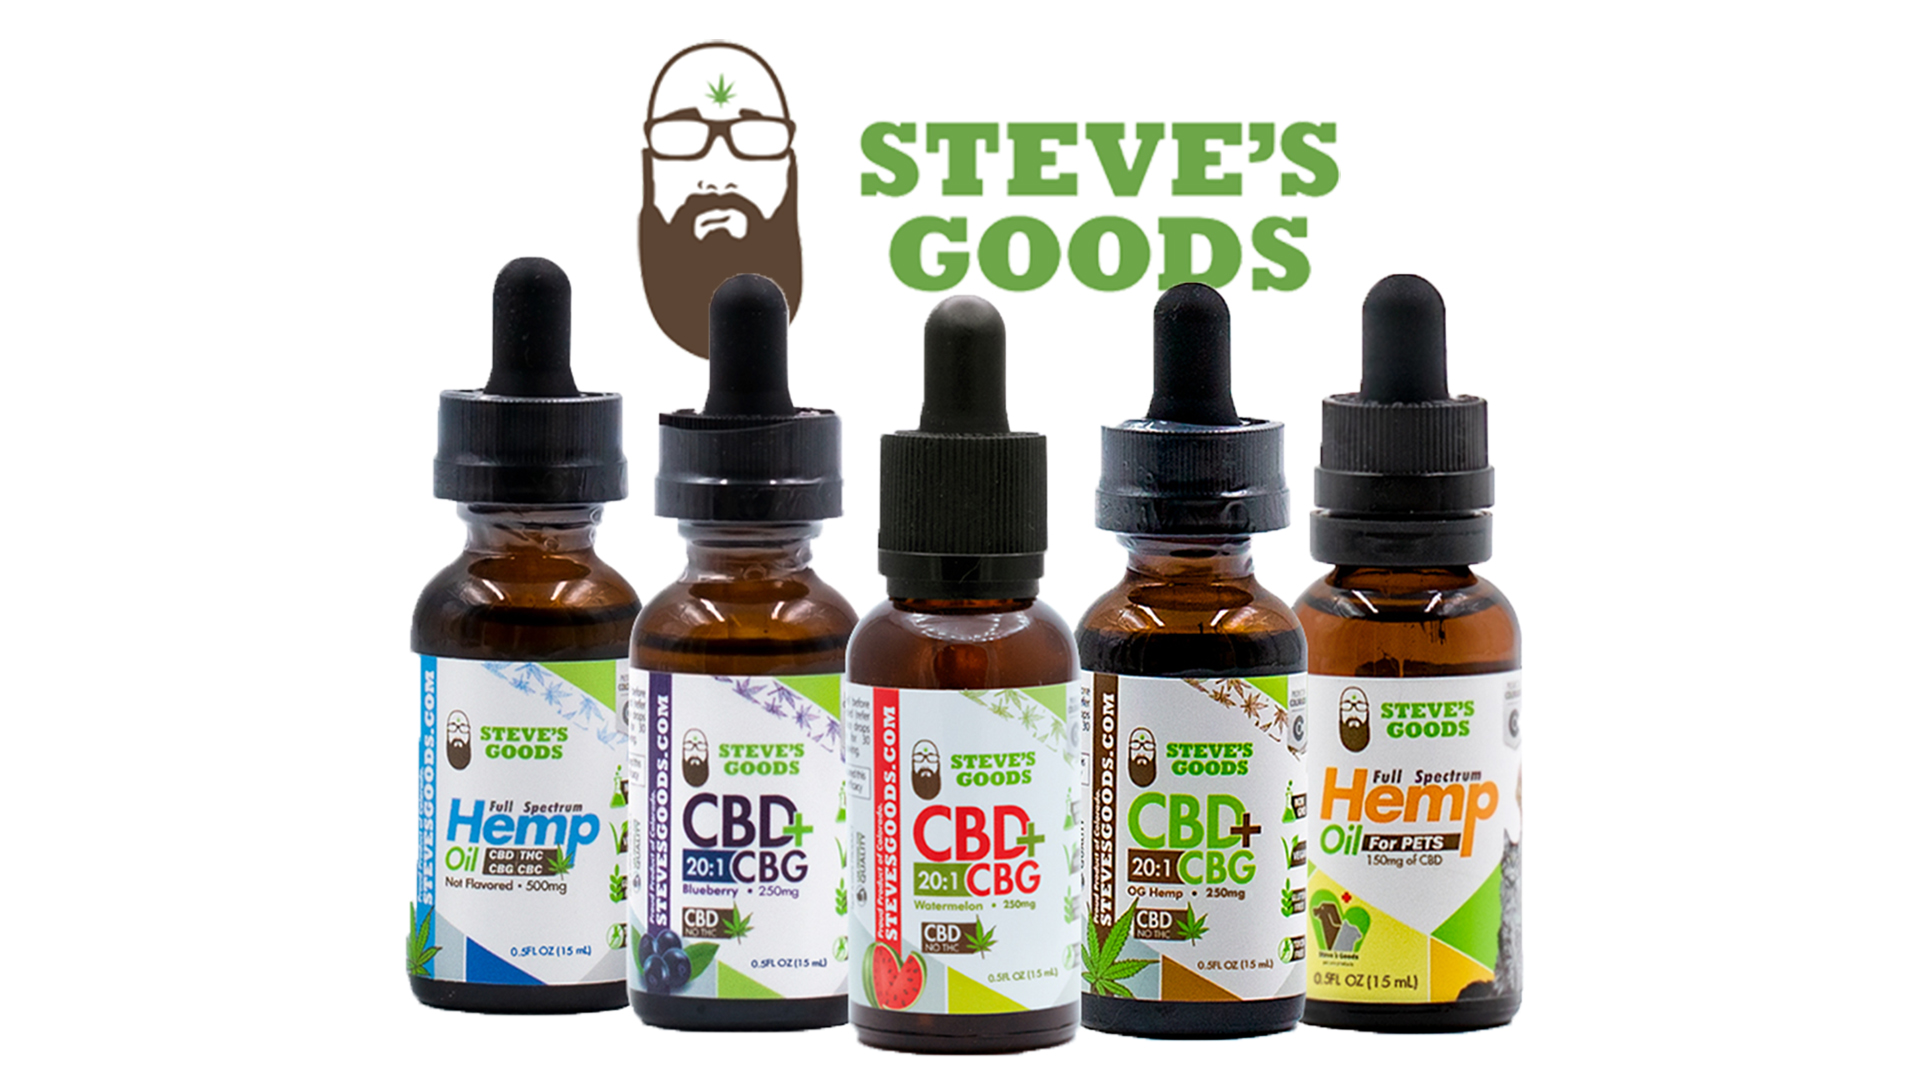 Steve's Goods CBG Hemp Oil